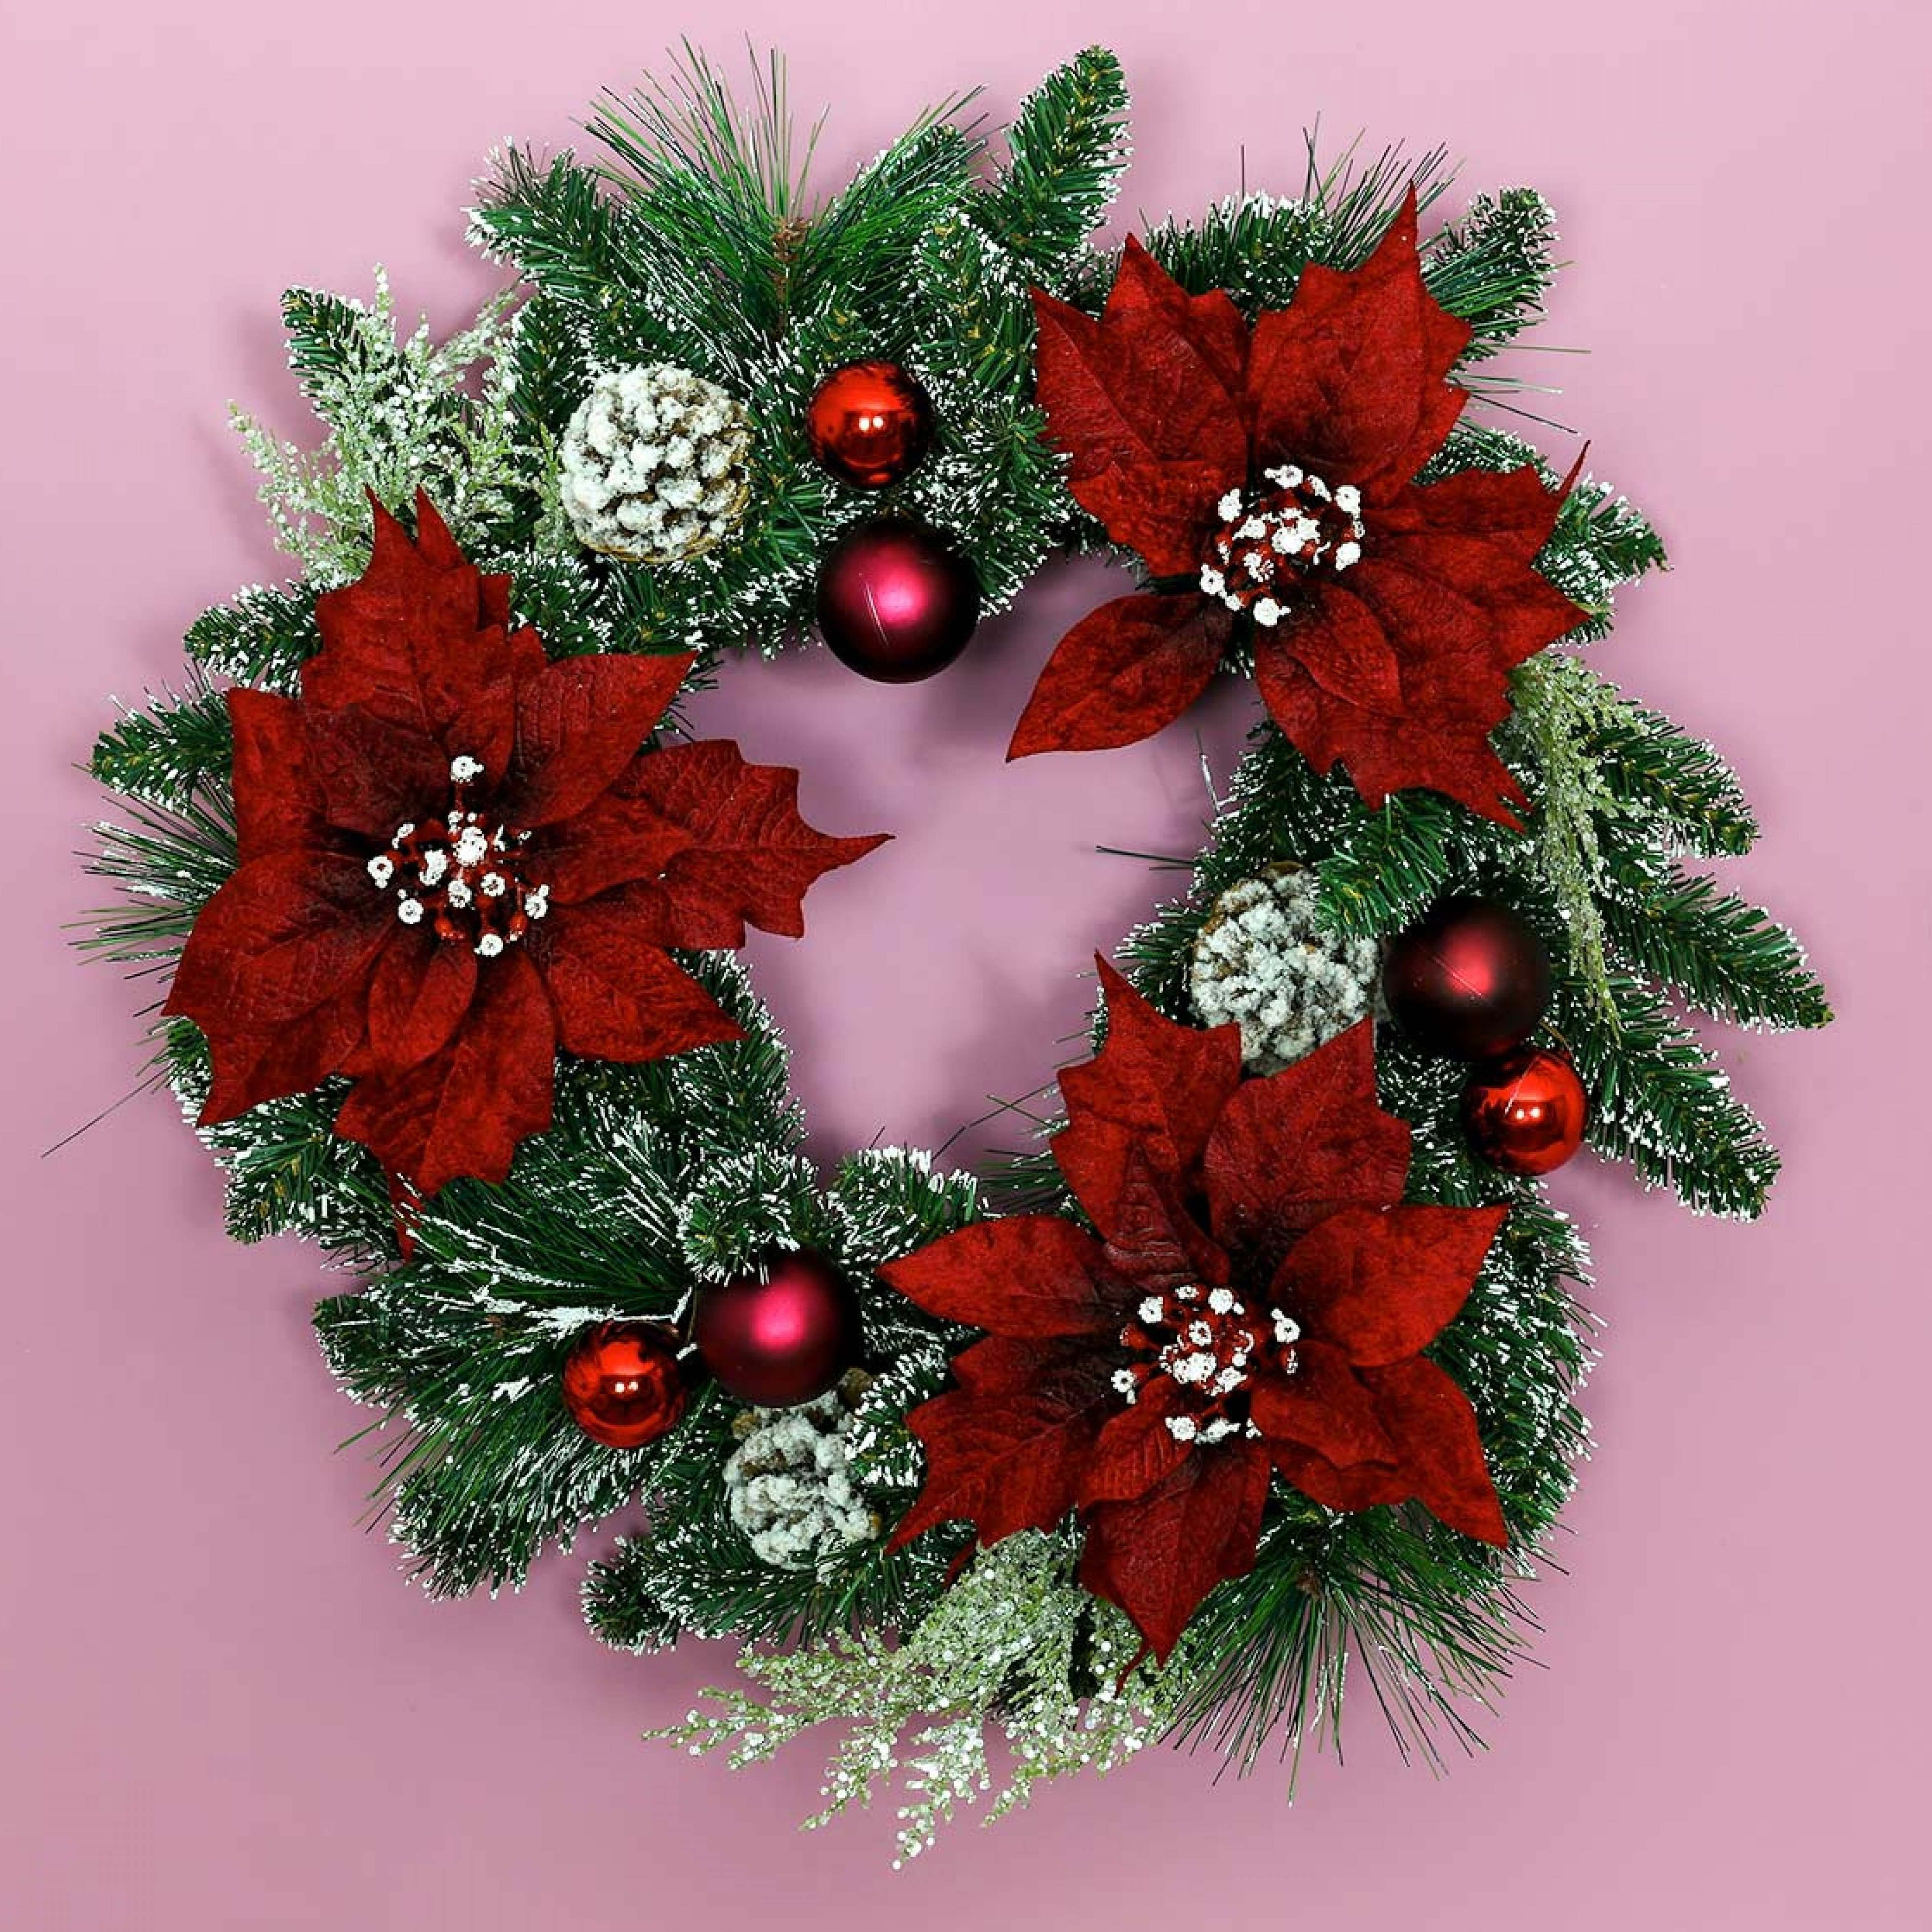 60cm Indoor Poinsettia Christmas Wreath with Decorations